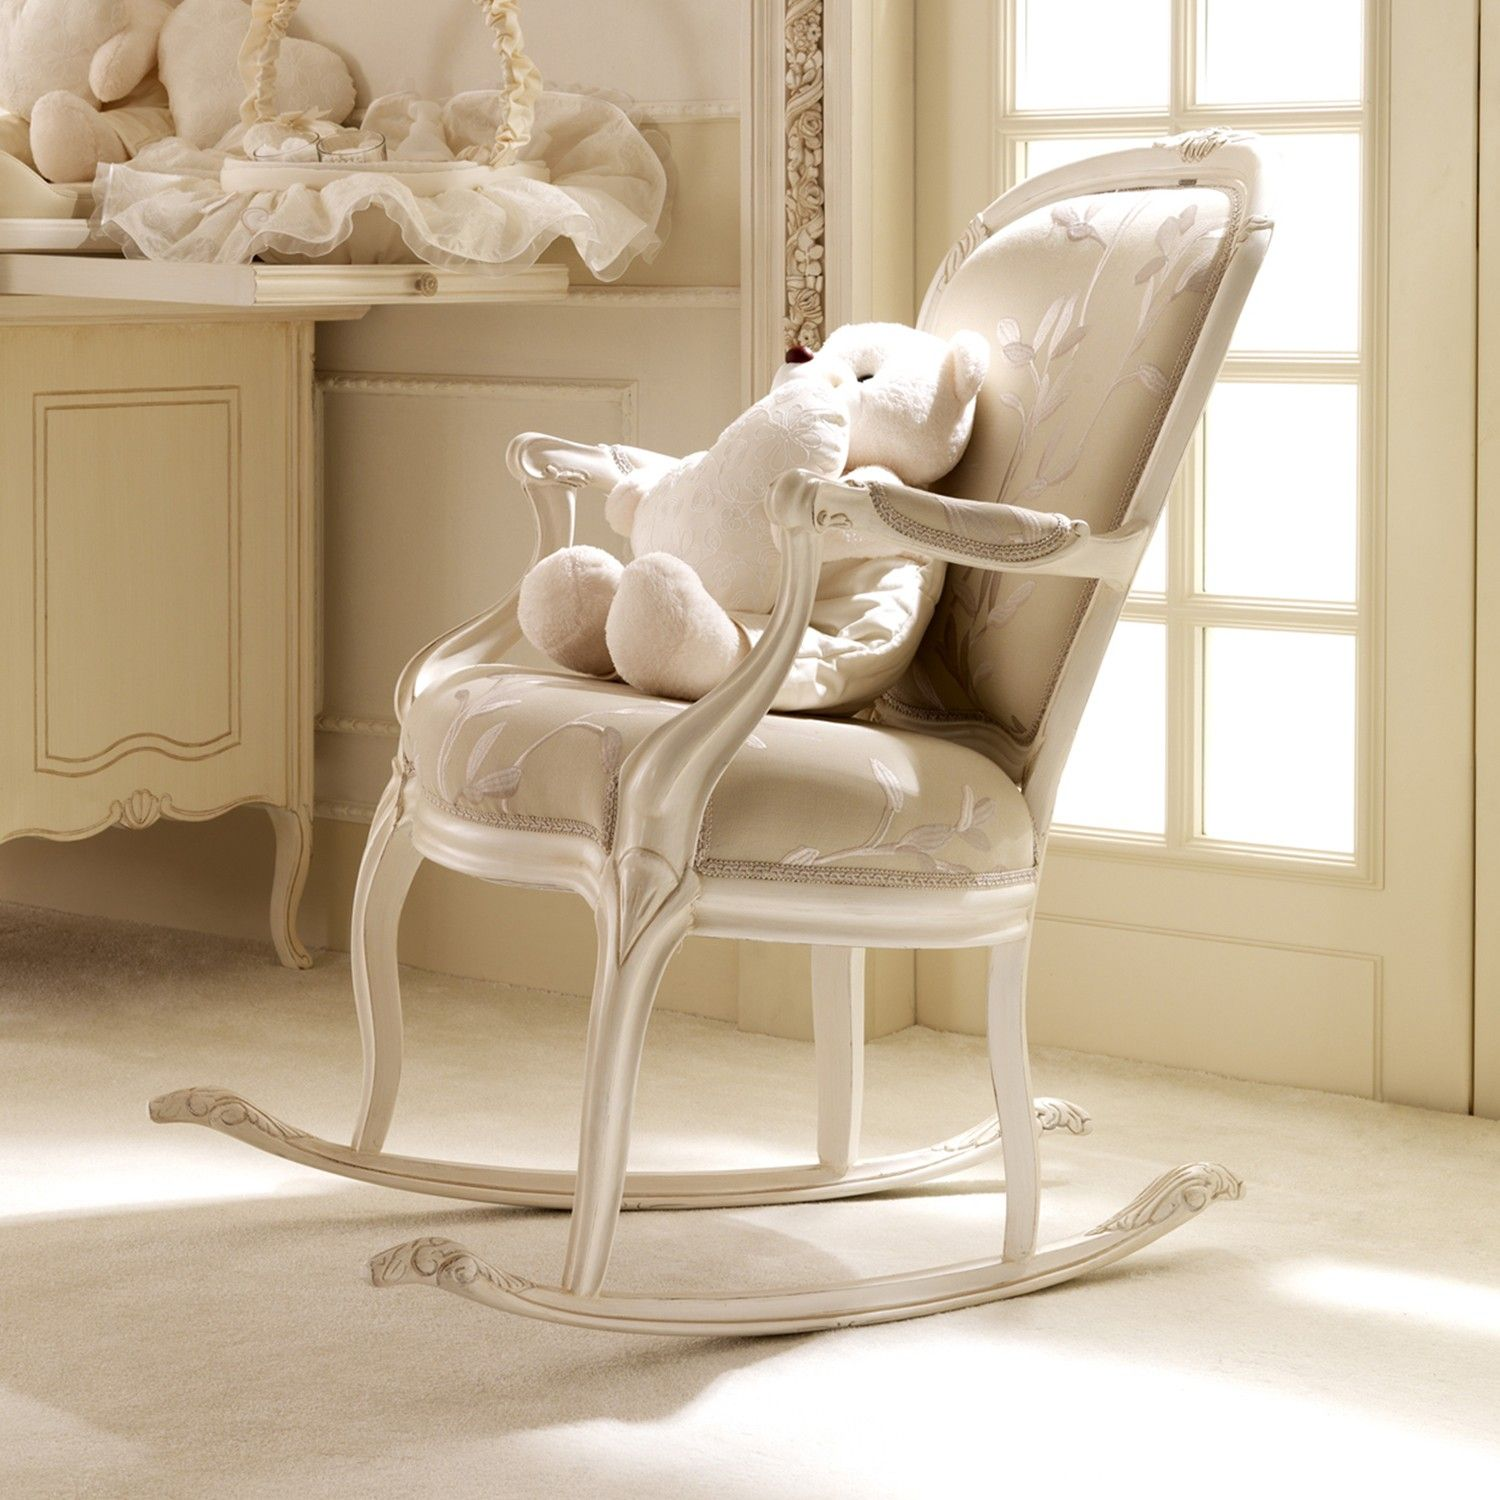 Notte Fatata Rocking Chair Bedroom Furniture for